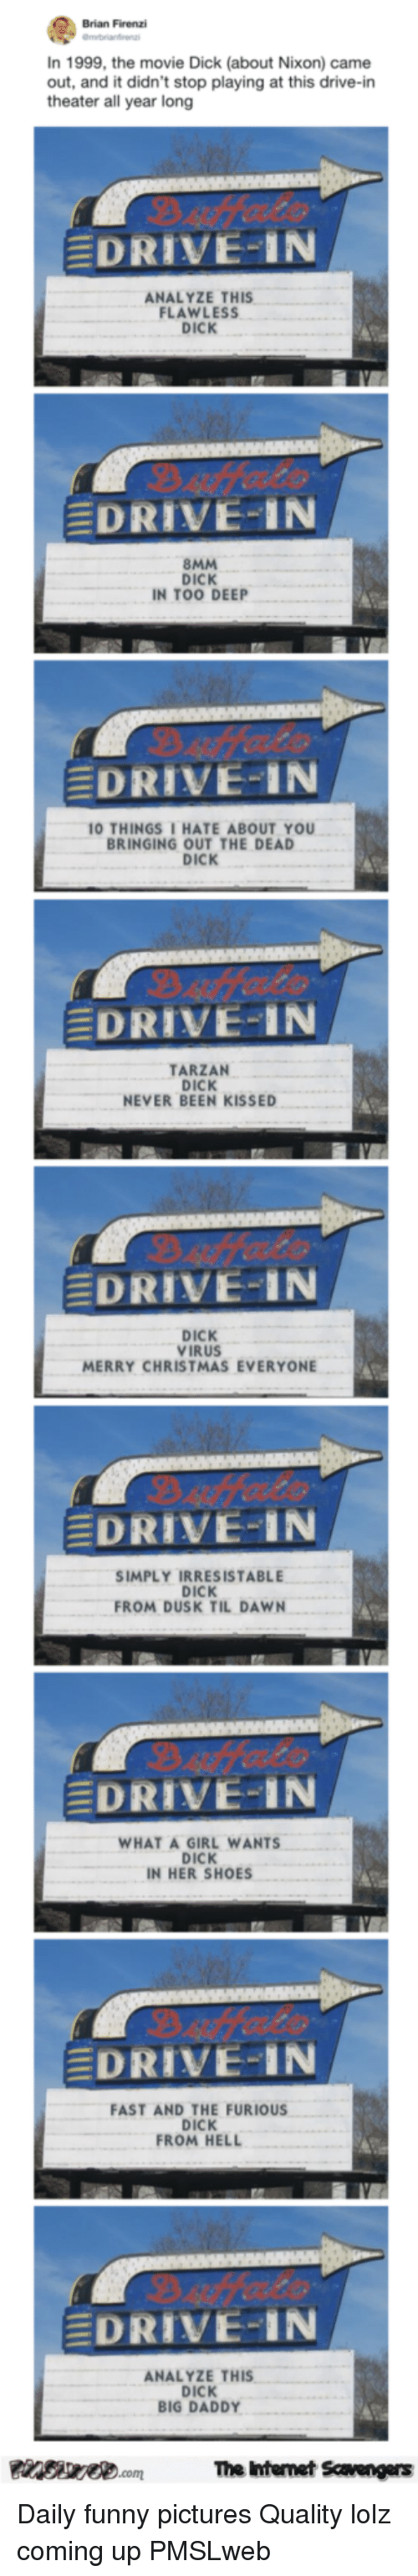 irresistable: Brian Firenzi  In 1999, the movie Dick (about Nixon) came  out, and it didn't stop playing at this drive-in  theater all year long  DRIVE-IN  ANALYZE THIS  FLAWLESS  DICK  EDRIVE-IN  8MM  DICK  IN TOO DEEP  EDRIVE-IN  0 THINGSI HATE ABOUT YOU  BRINGING OUT THE DEAD  DICK  EDRIVE-IN  TARZAN  DICK  NEVER BEEN KISSED  EDRIVE-IN  DICK  VIRUS  MERRY CHRISTMAS EVERYONE  DRIVE-IN  SIMPLY IRRESISTABLE  DICK  FROM DUSK TIL DAWN  DRIVE-IN  WHAT A GIRL WANTS  DICK  IN HER SHOES  DRIVE-IN  FAST AND THE FURIOUS  DICK  ROM HELL  EDRIVE-IN  ANALYZE THIS  DICK  BIG DADDY  The Ihtenet Scavengers <p>Daily funny pictures  Quality lolz coming up  PMSLweb </p>